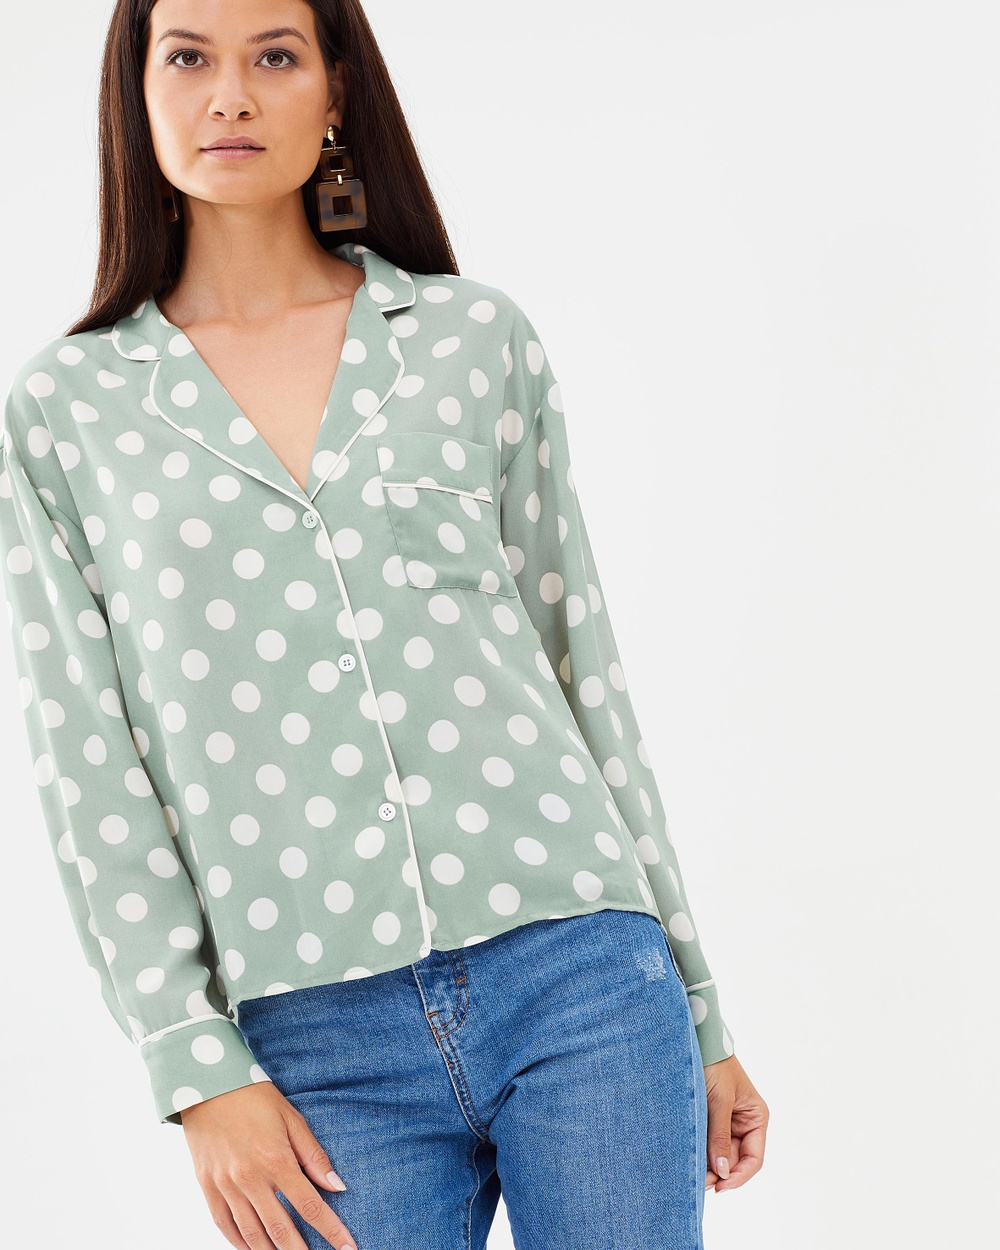 M.N.G Dots Blouse Tops Verde Dots Blouse